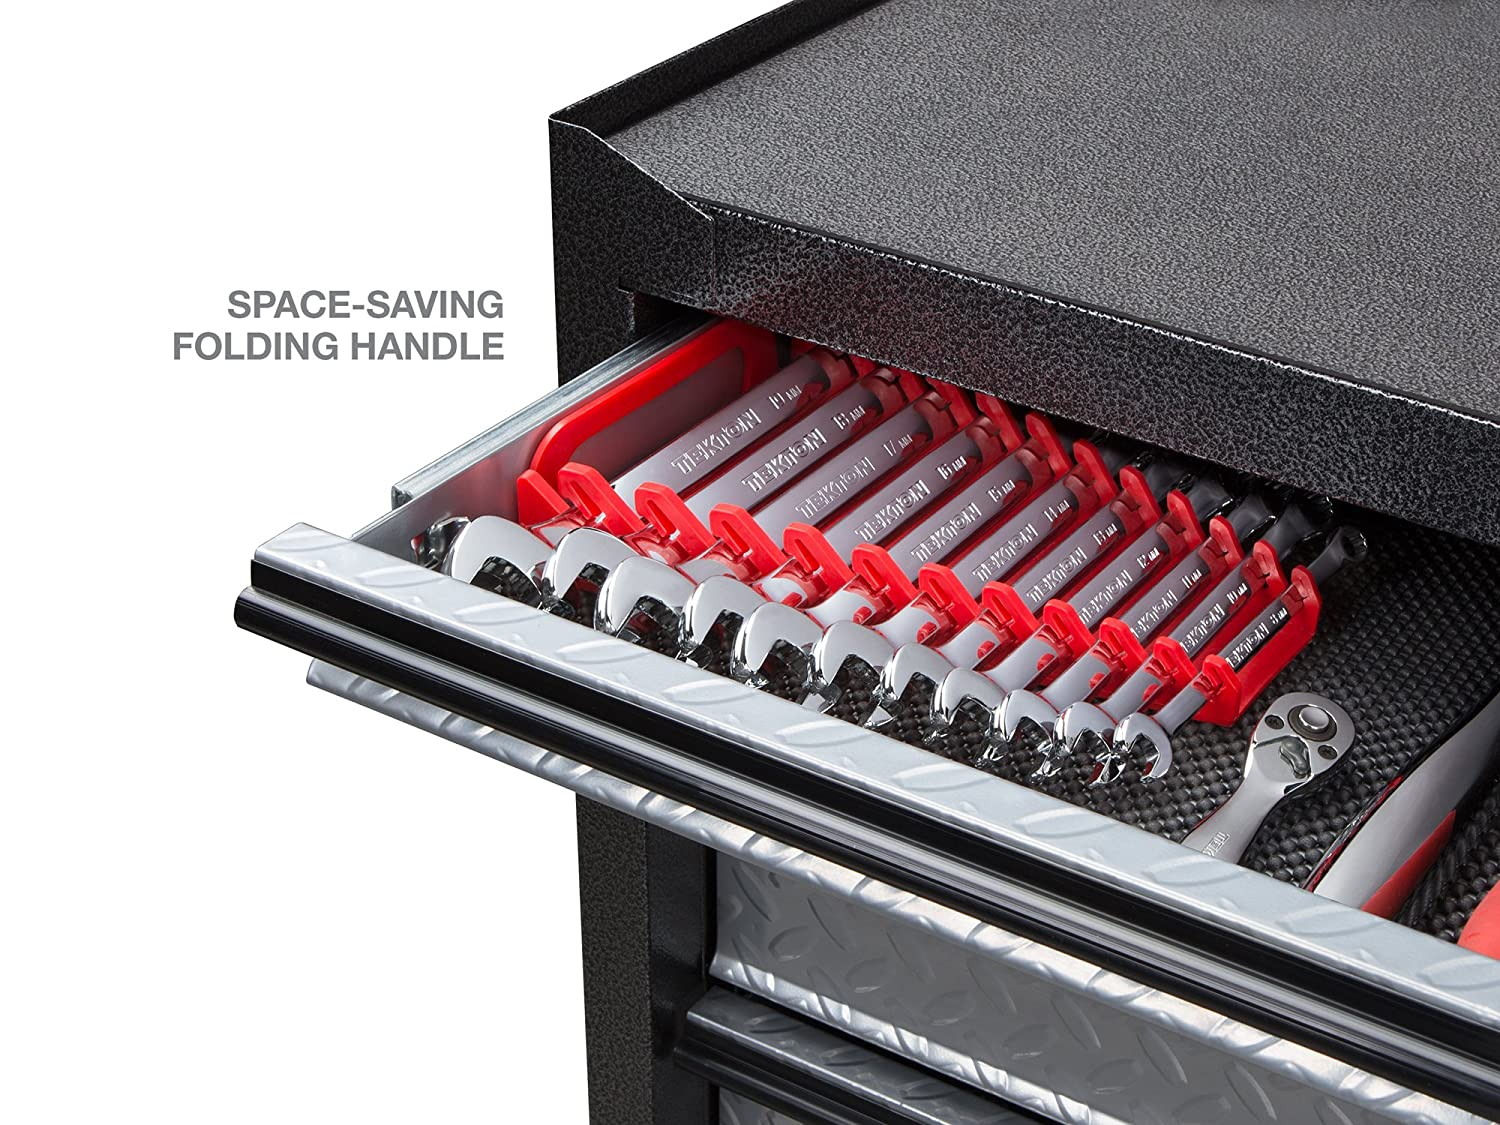 1//4-Inch Inch//Metric TEKTON Combination Wrench Set with Store and Go Keeper 30-Piece 1-Inch 8 mm 22 mm 90191